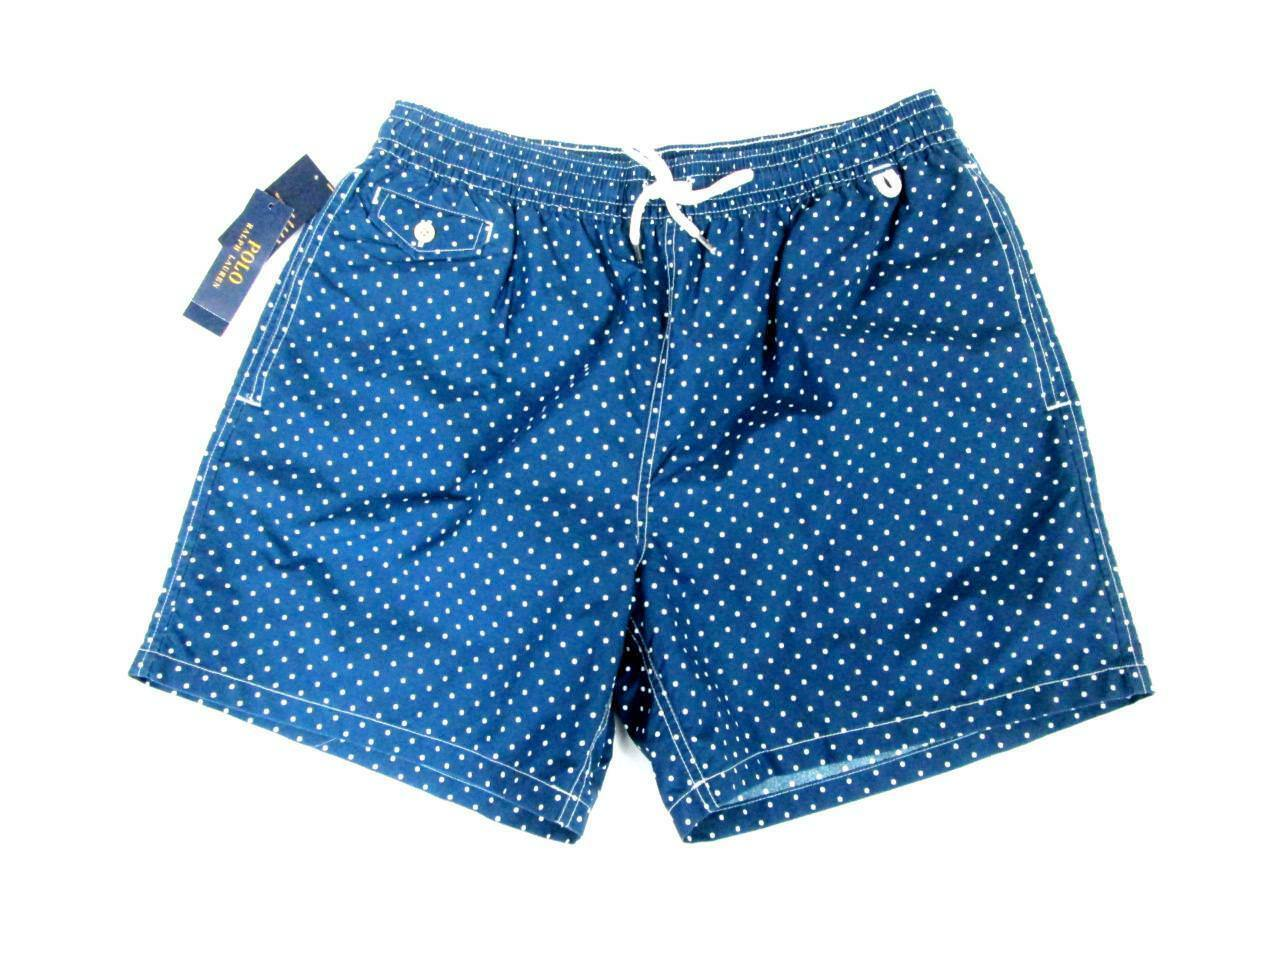 POLO RALPH LAUREN MENS blueE WHITE POLKA DOT SUMMER BEACH SHORTS SWIM TRUNKS XL